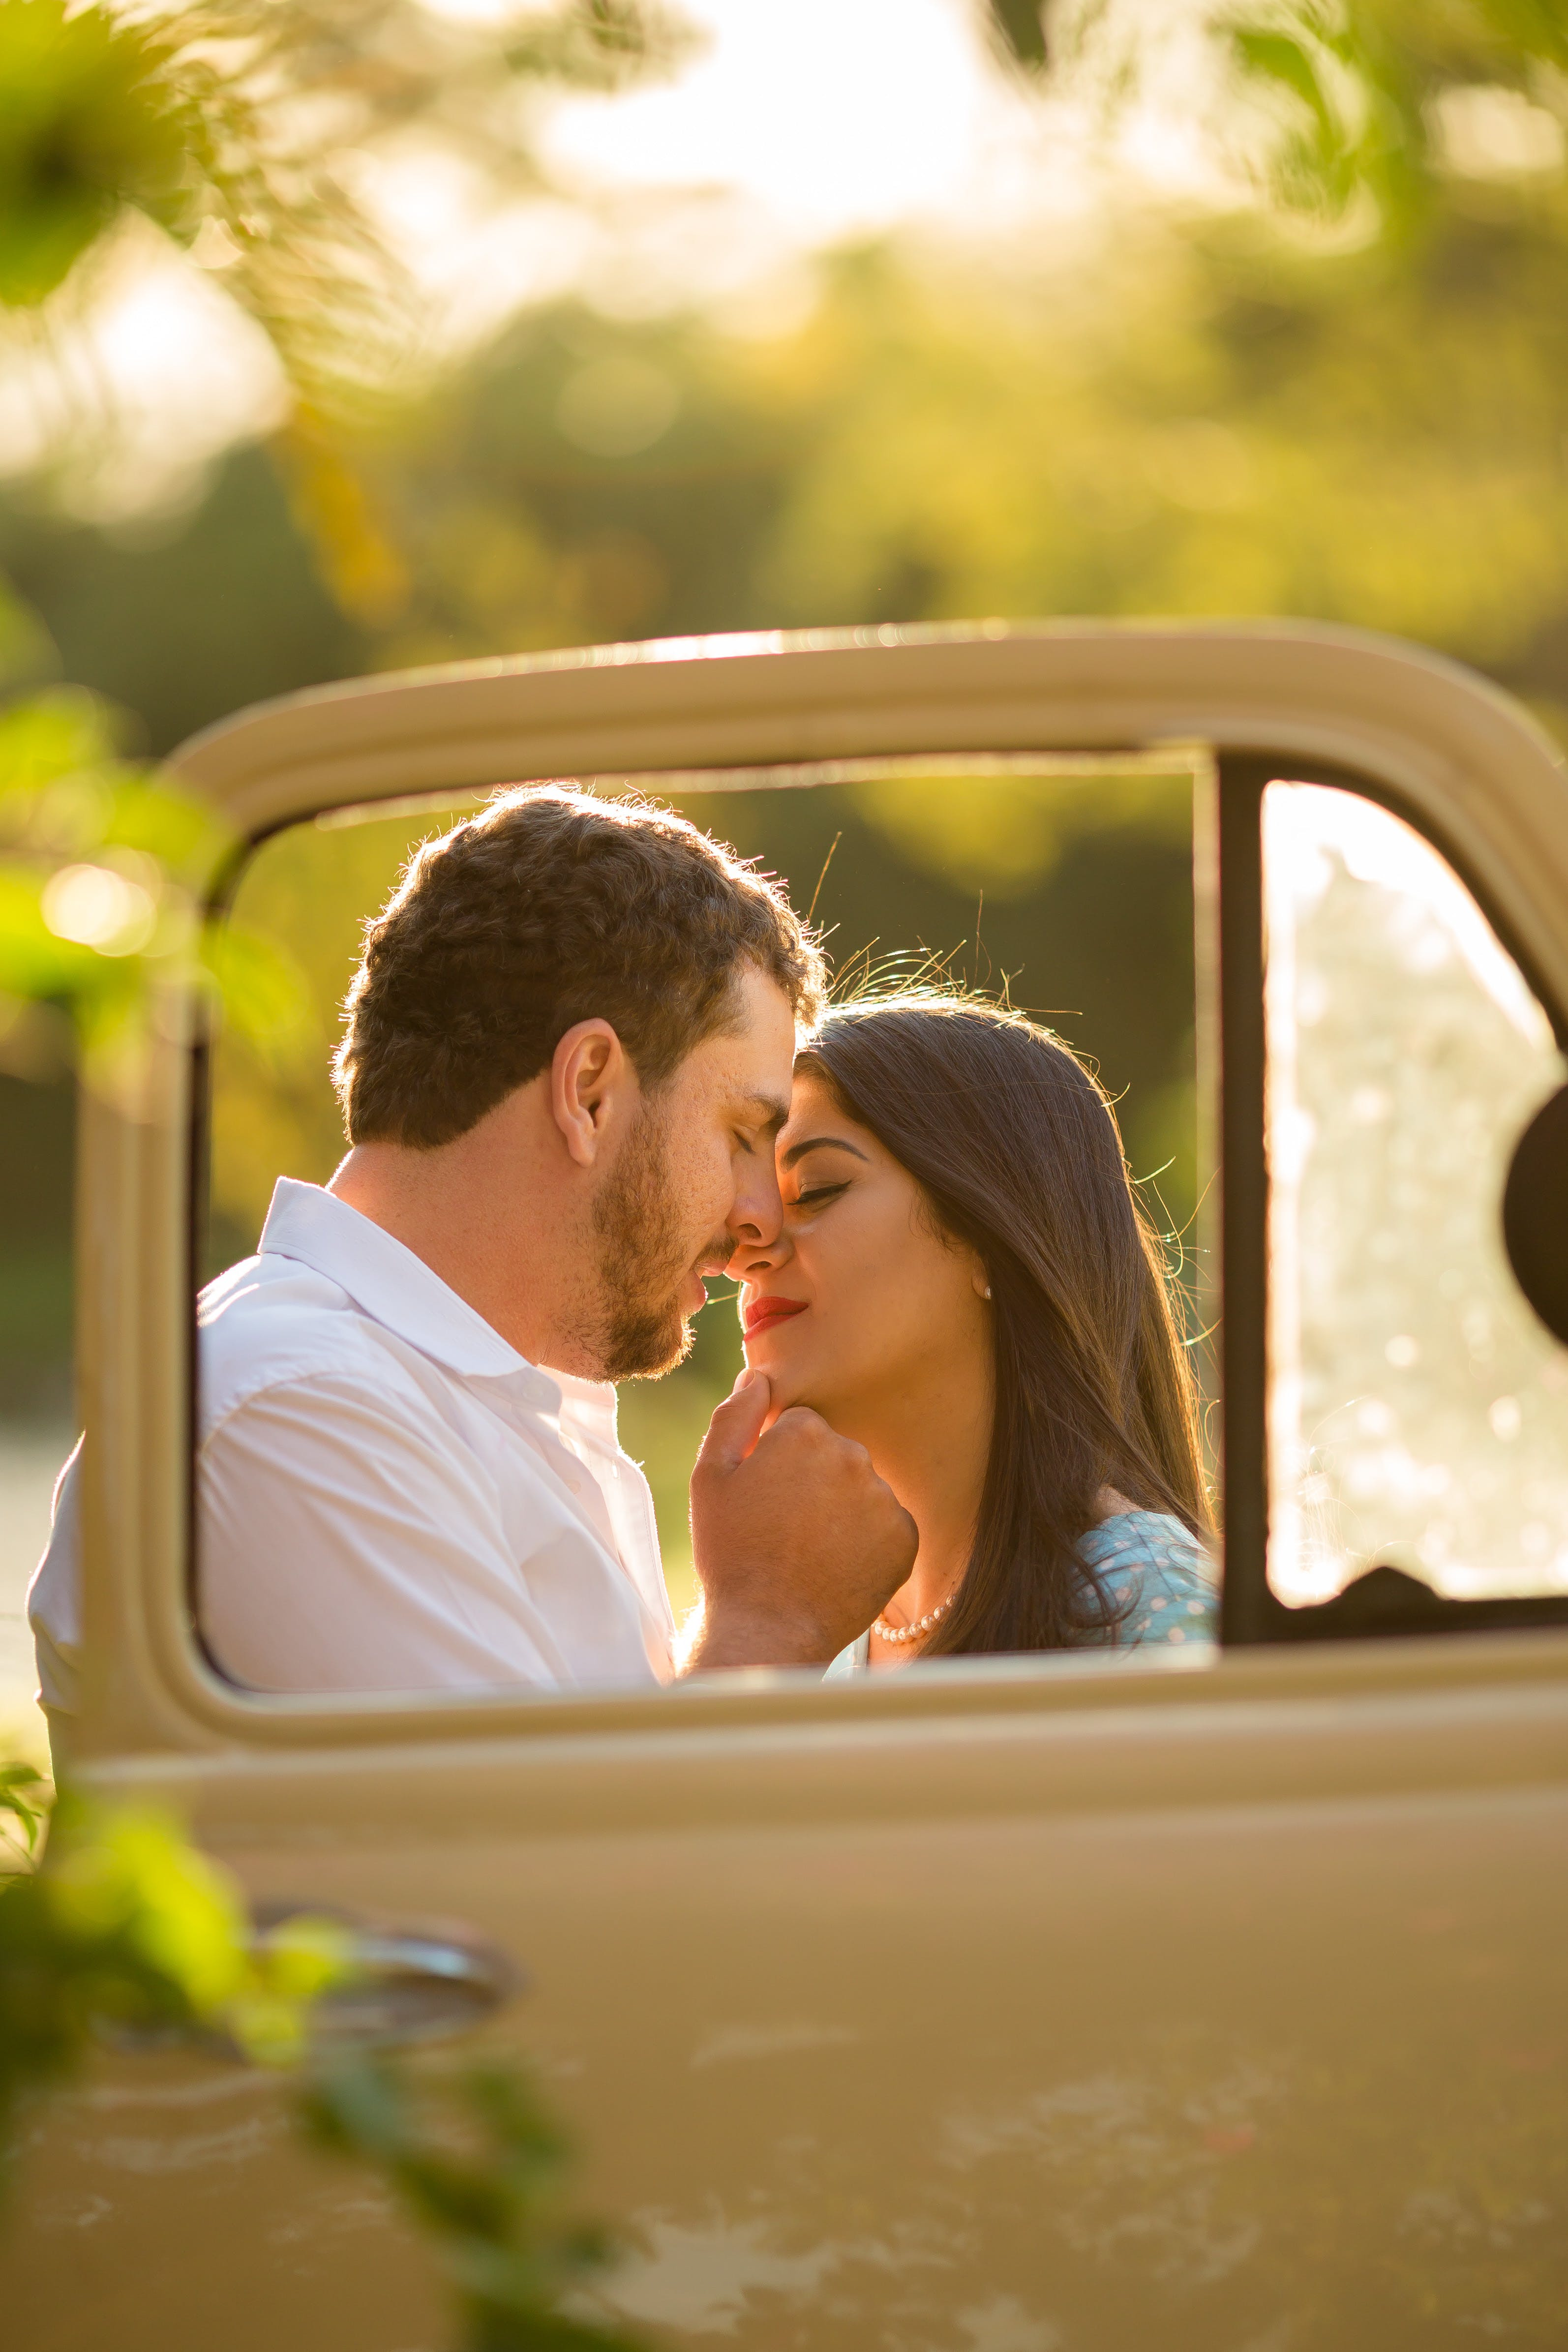 Selective Focus Photography of Couple Trying to Kiss